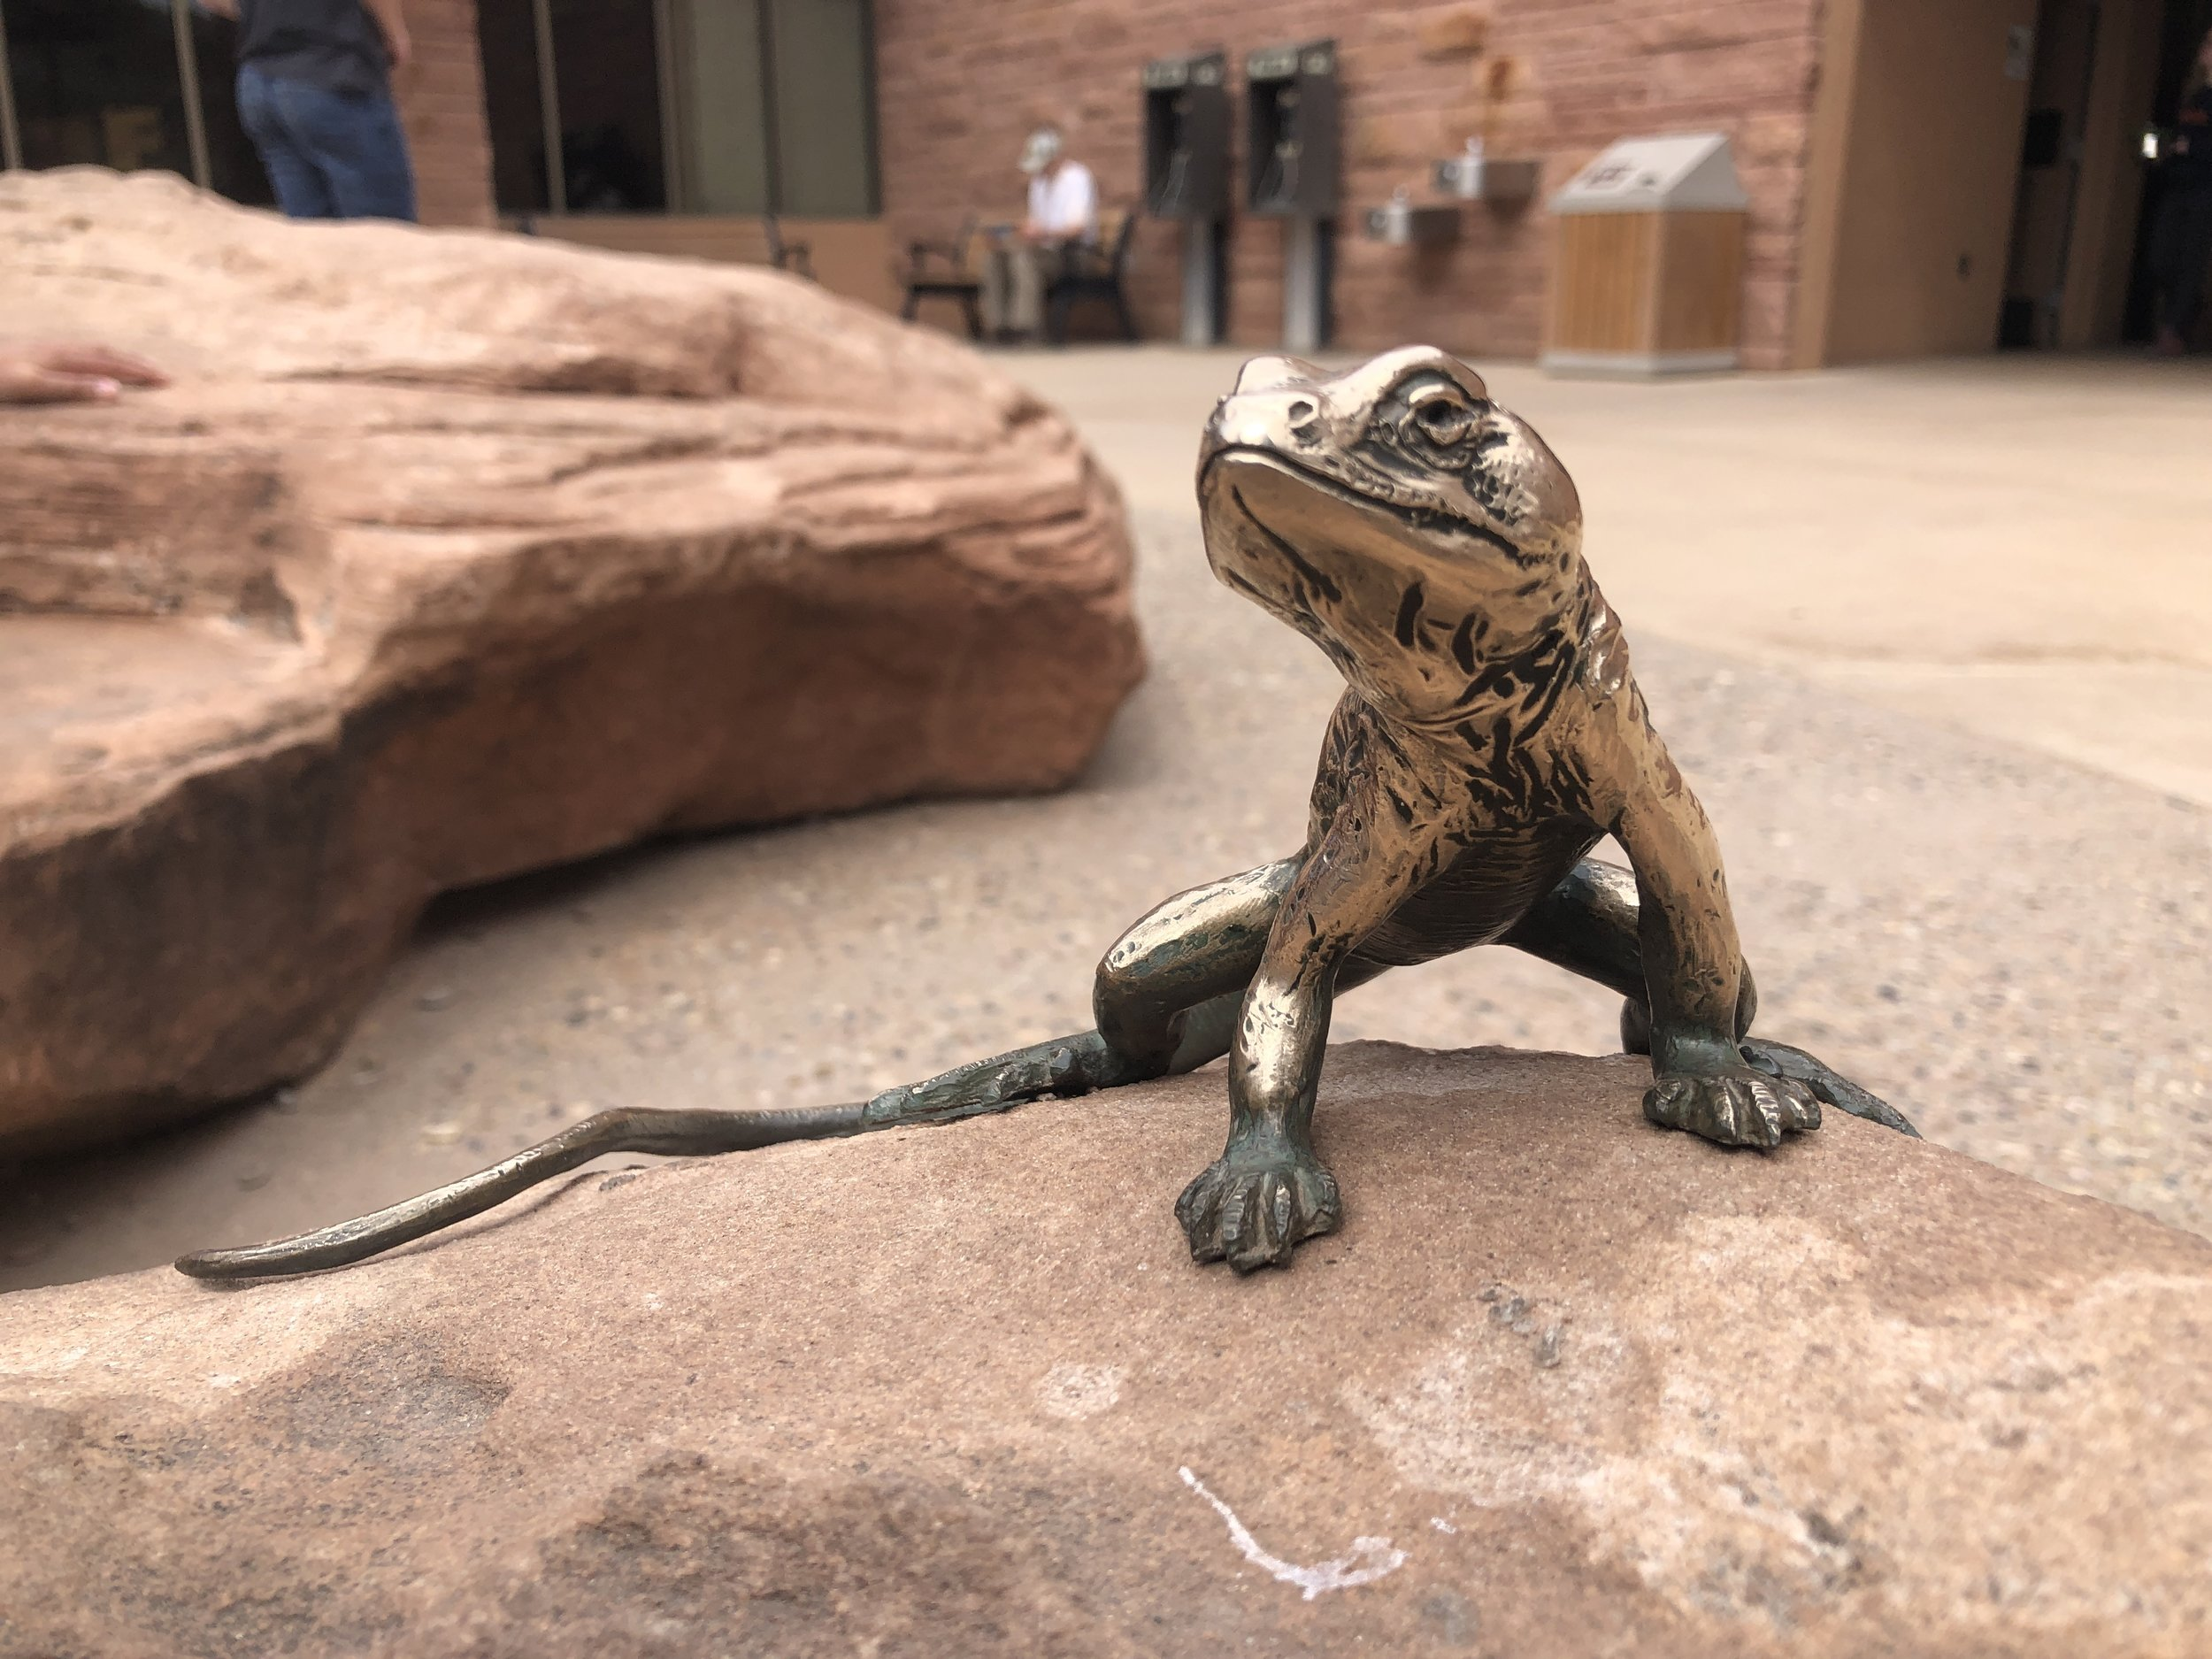 A bronze statue of a Collared Lizard in Arches National Park, Utah.